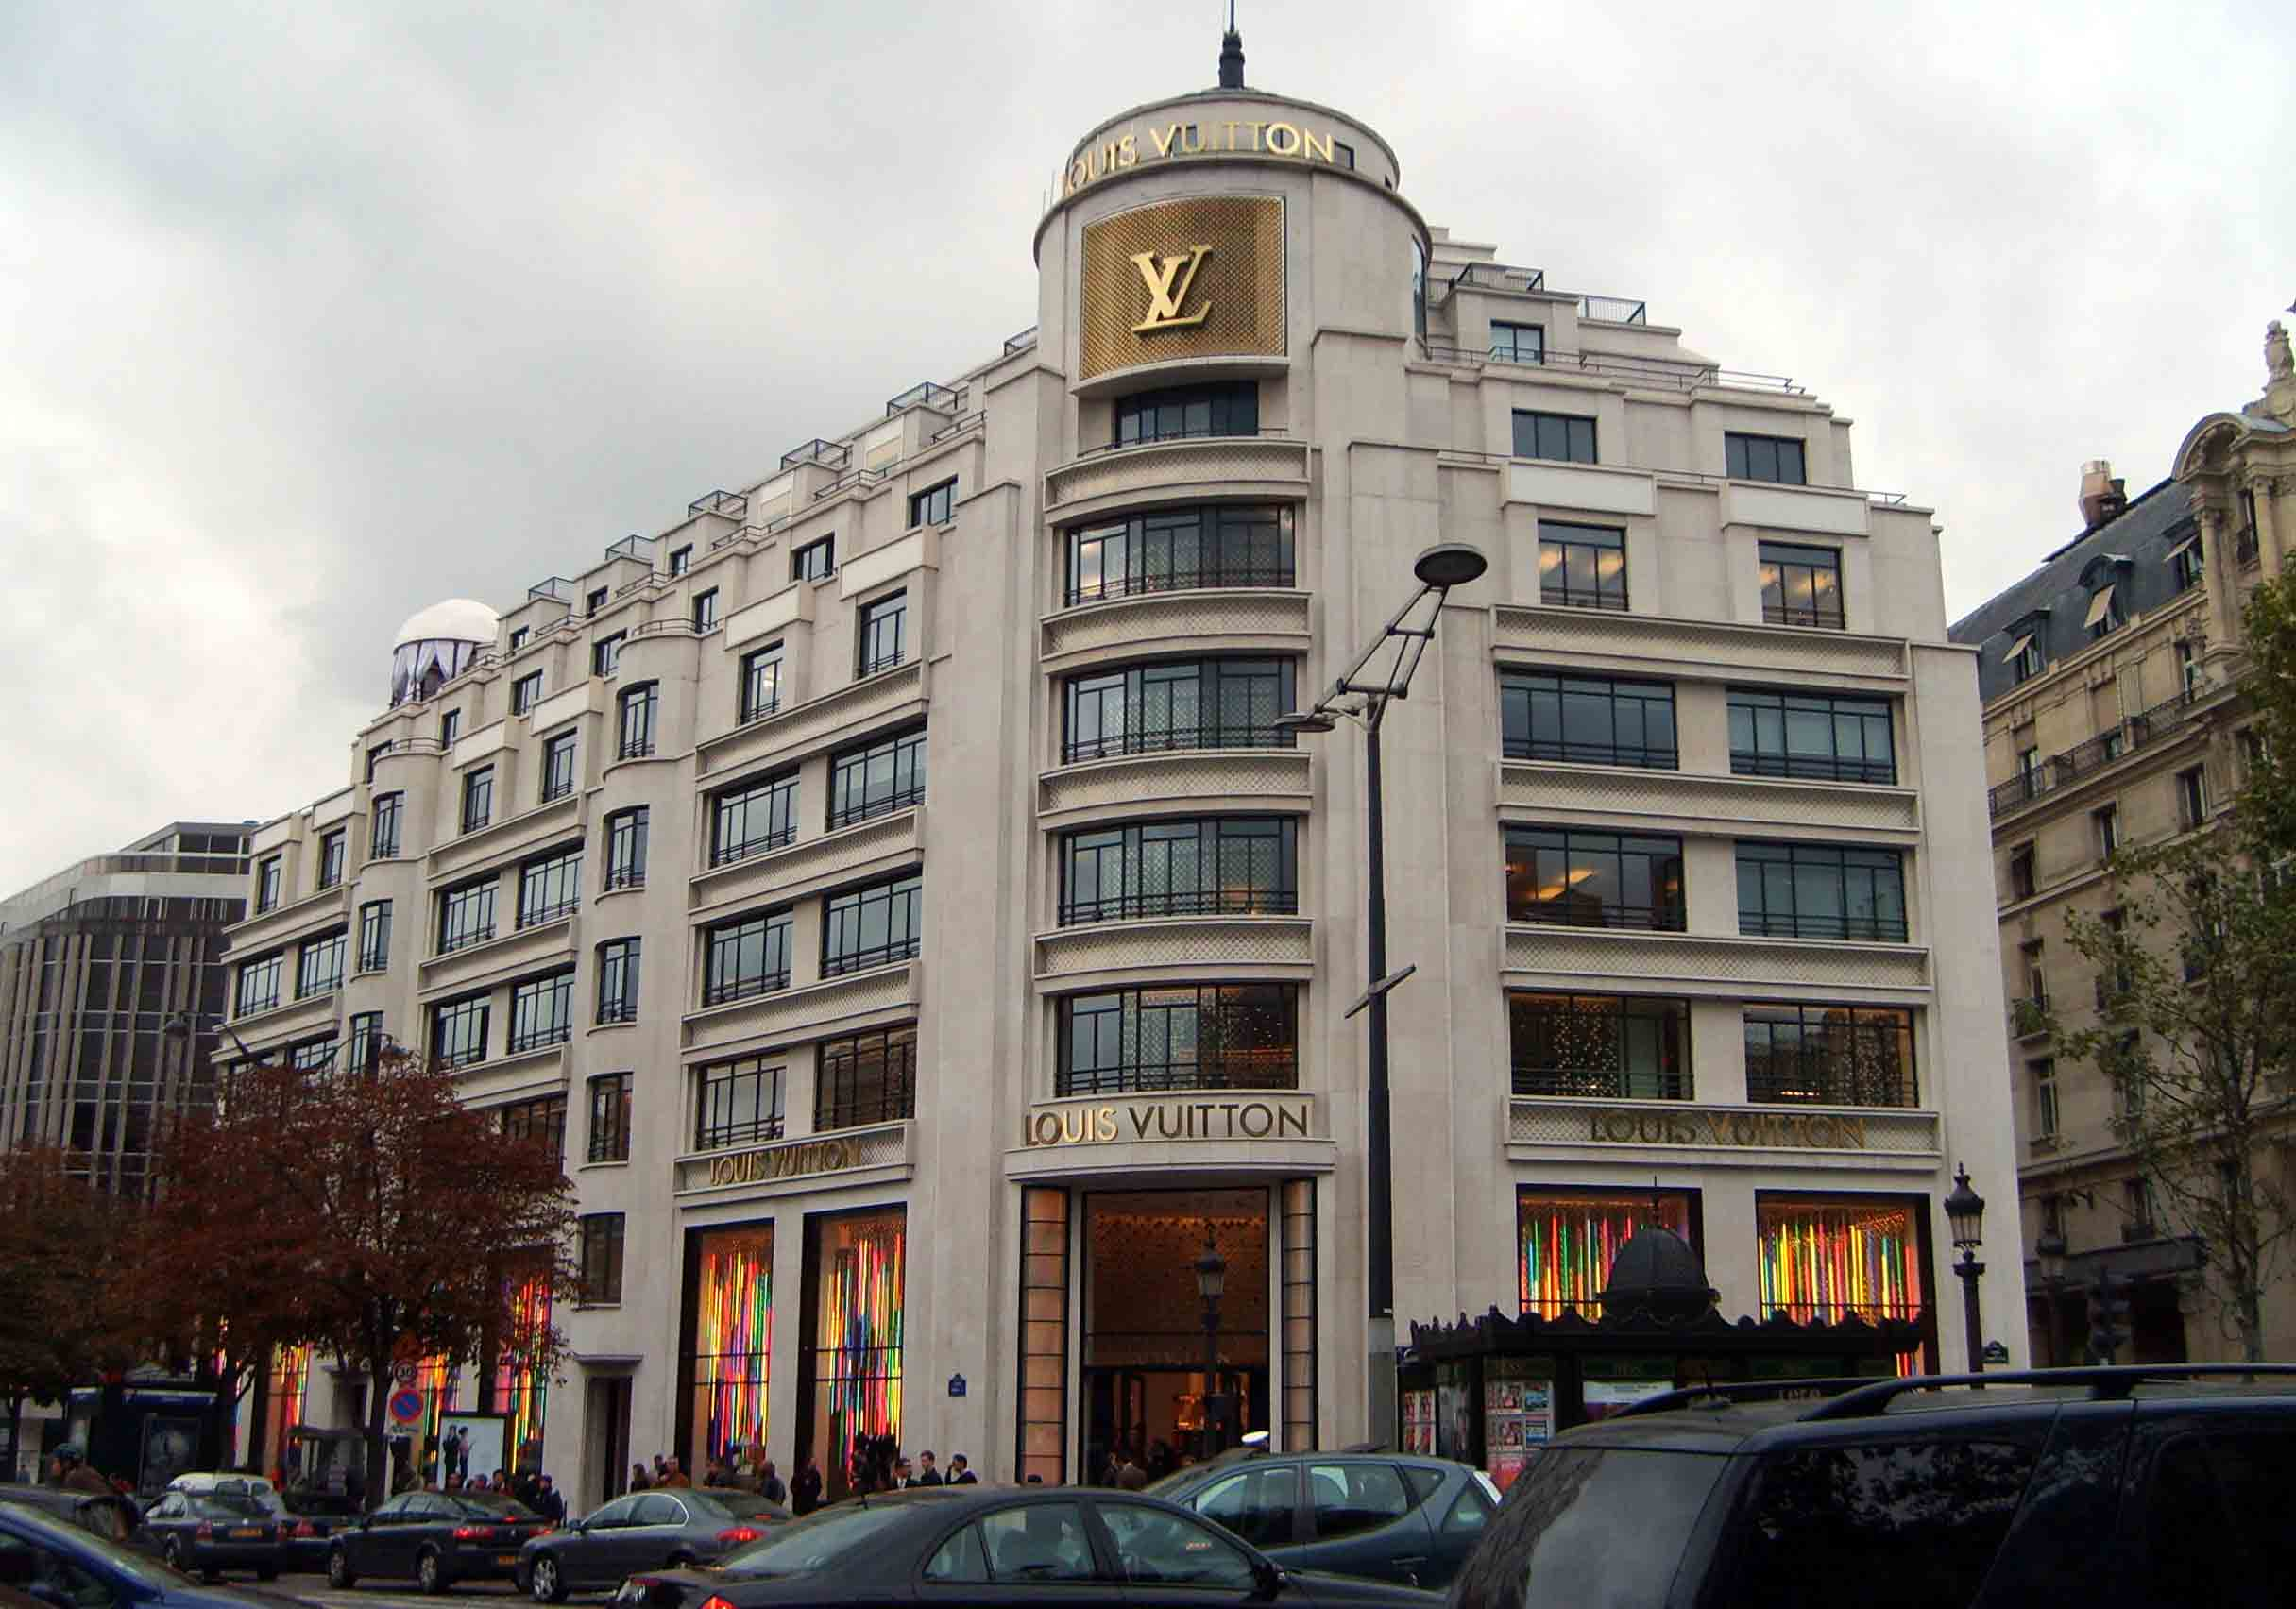 http://upload.wikimedia.org/wikipedia/commons/b/b1/Louis-Vuitton-Paris.jpg